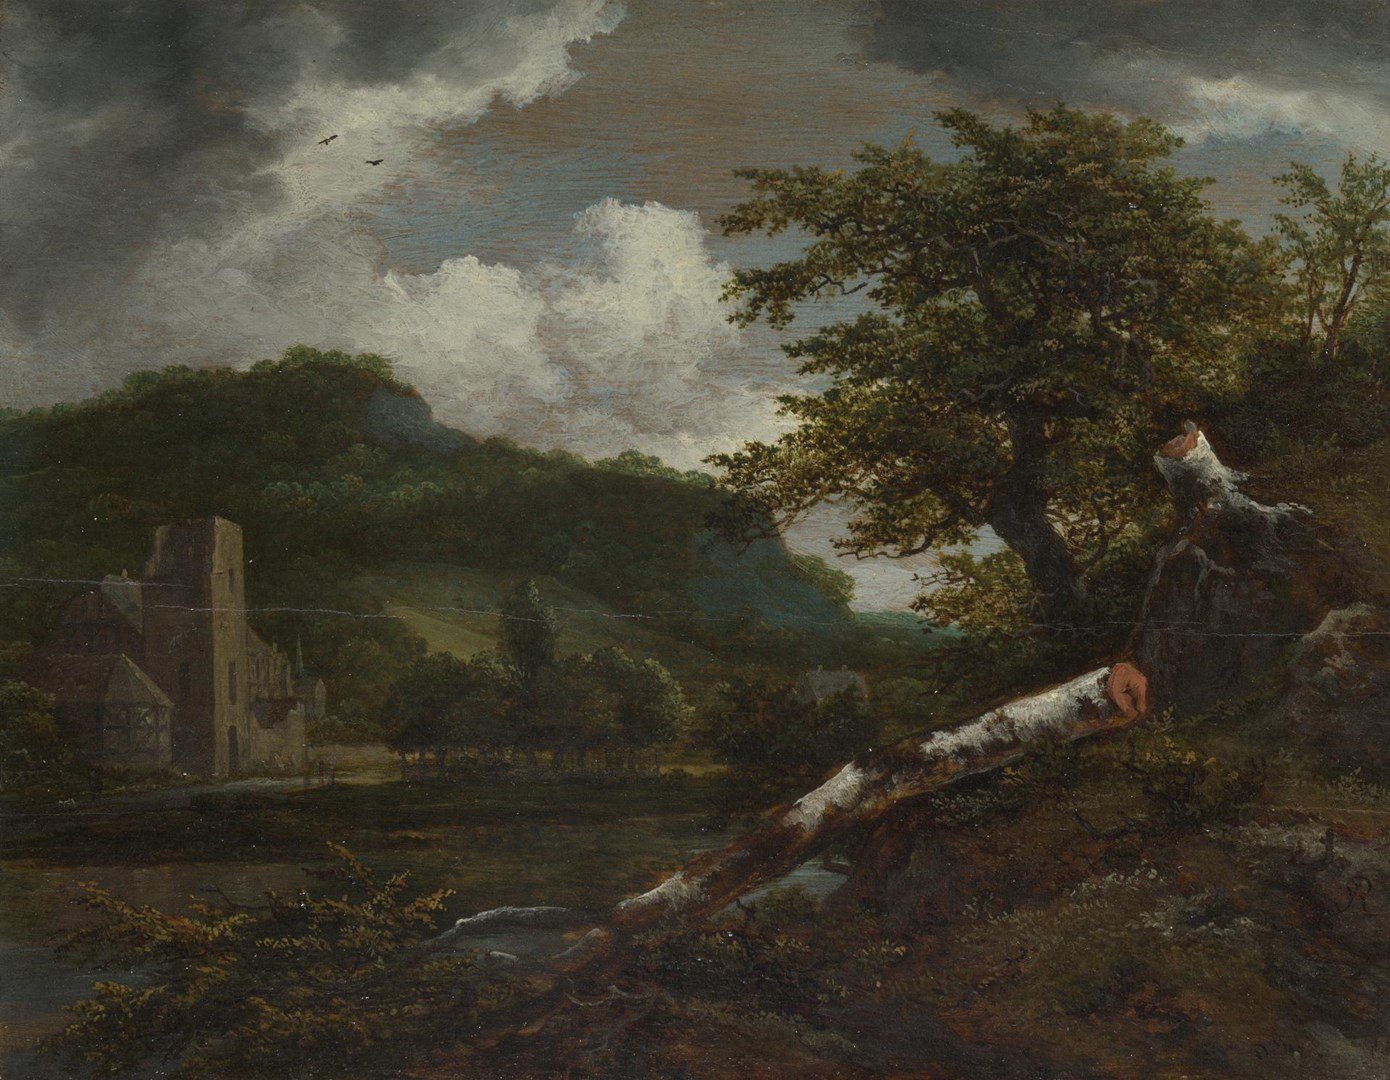 A Landscape with a Ruined Building by Jacob van Ruisdael